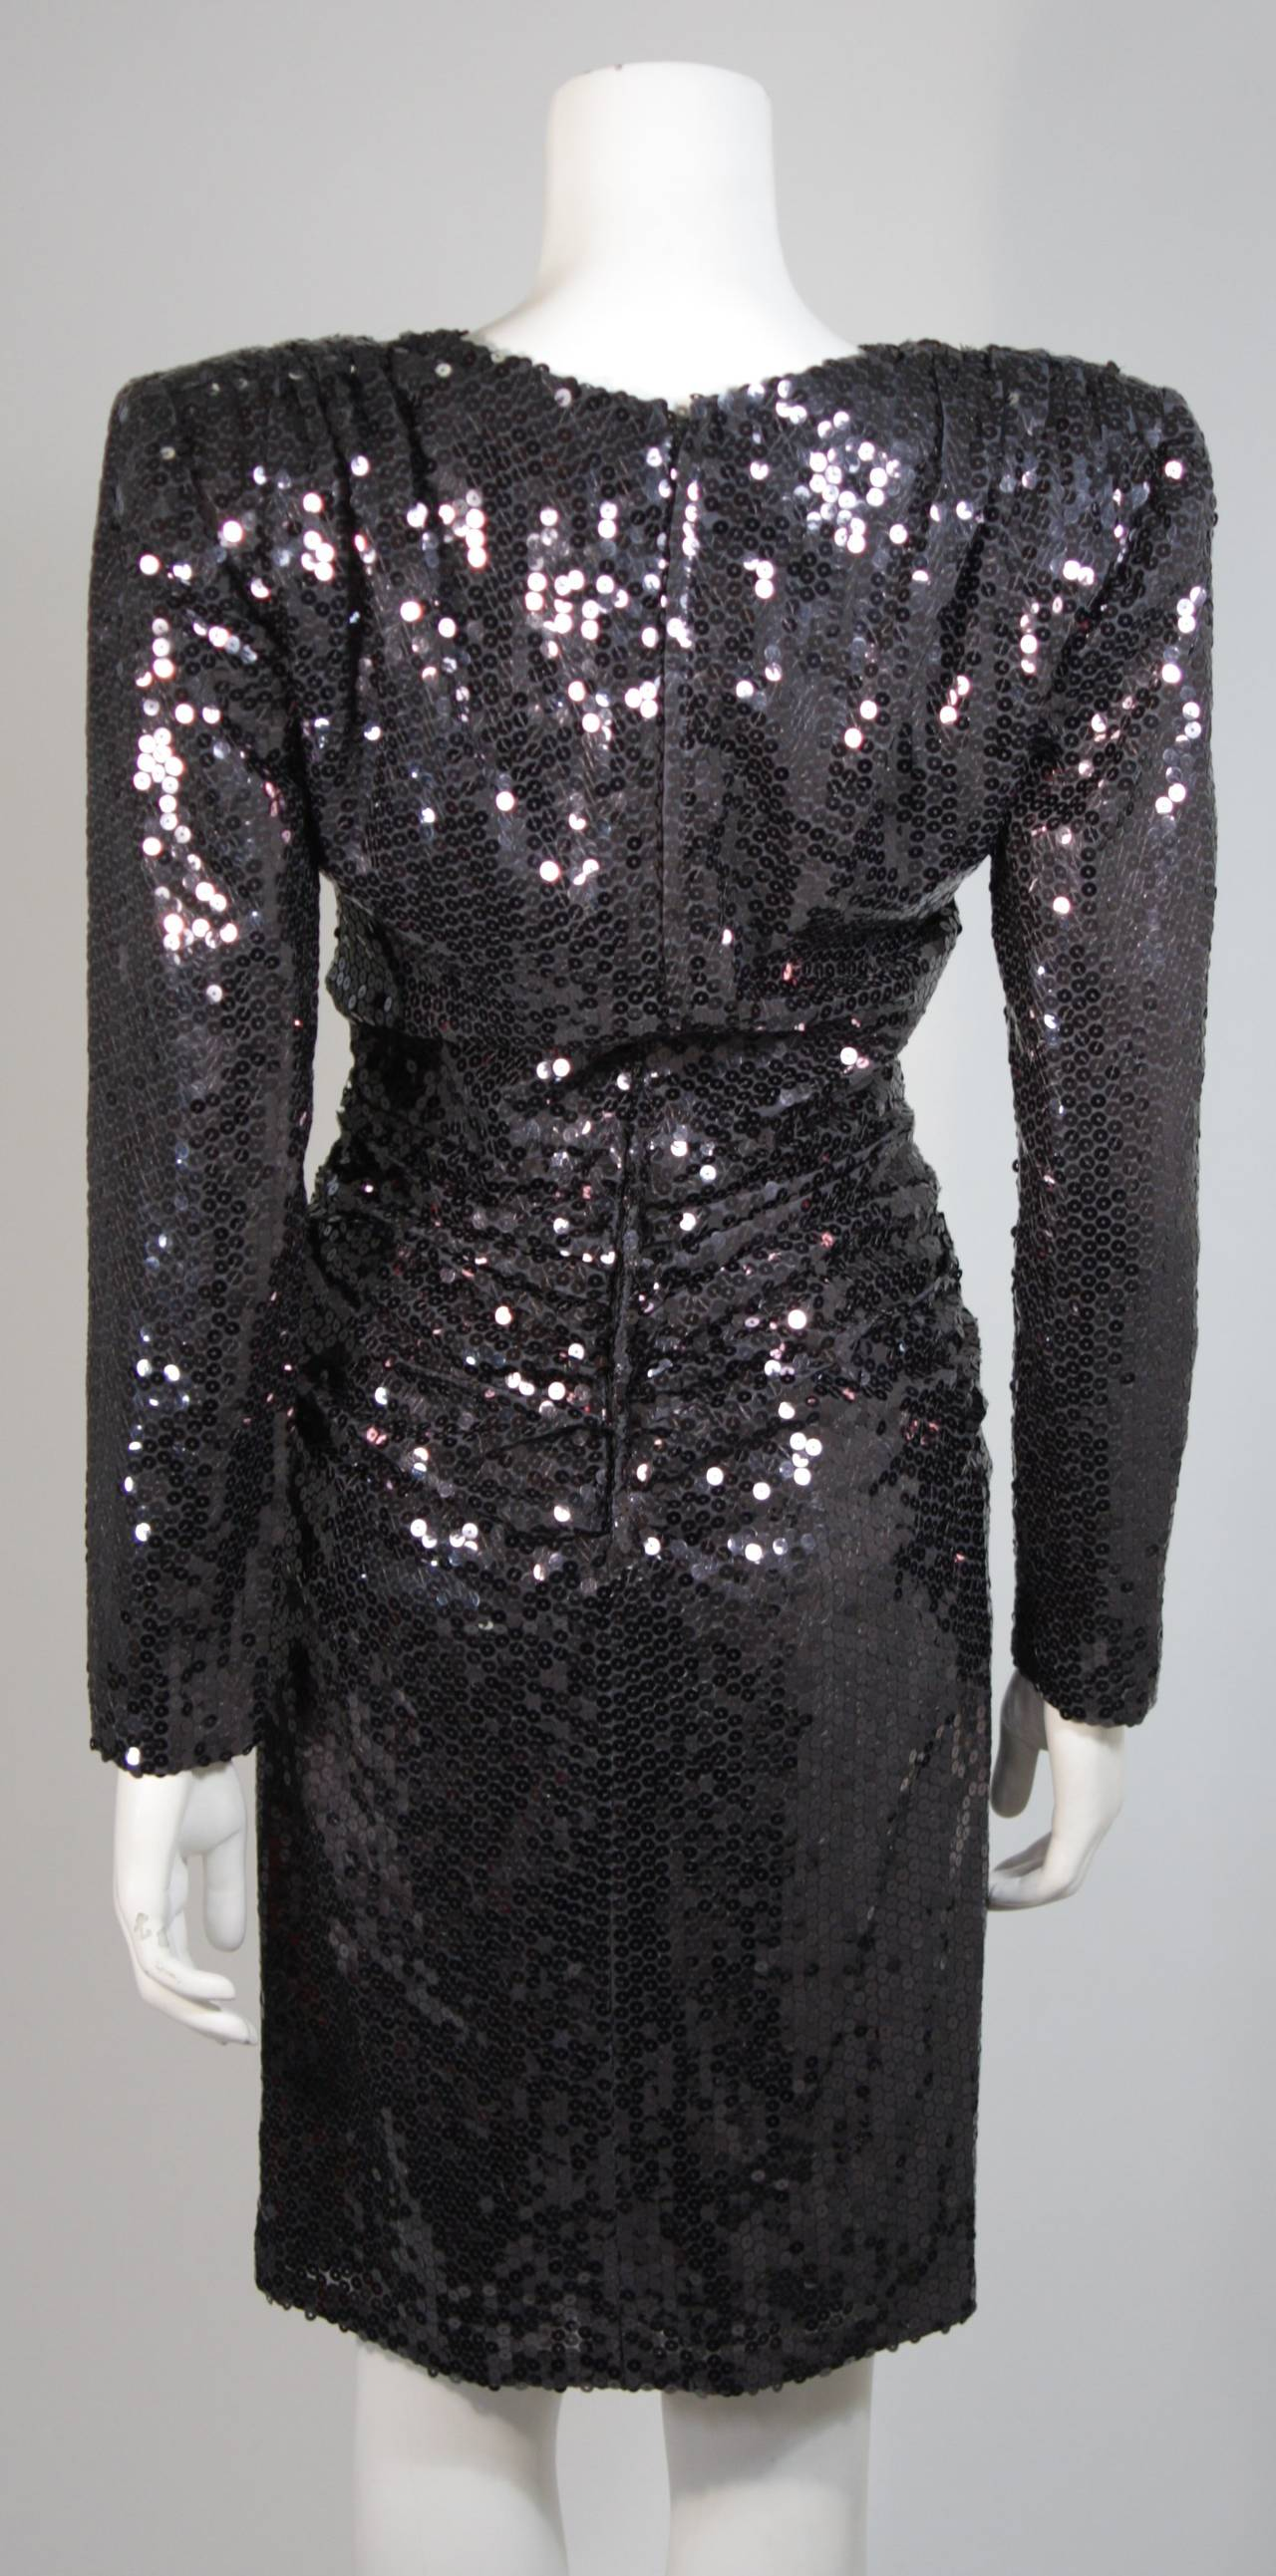 Vicky Tiel Black Iridescent Sequin Cocktail Dress Size 38 9